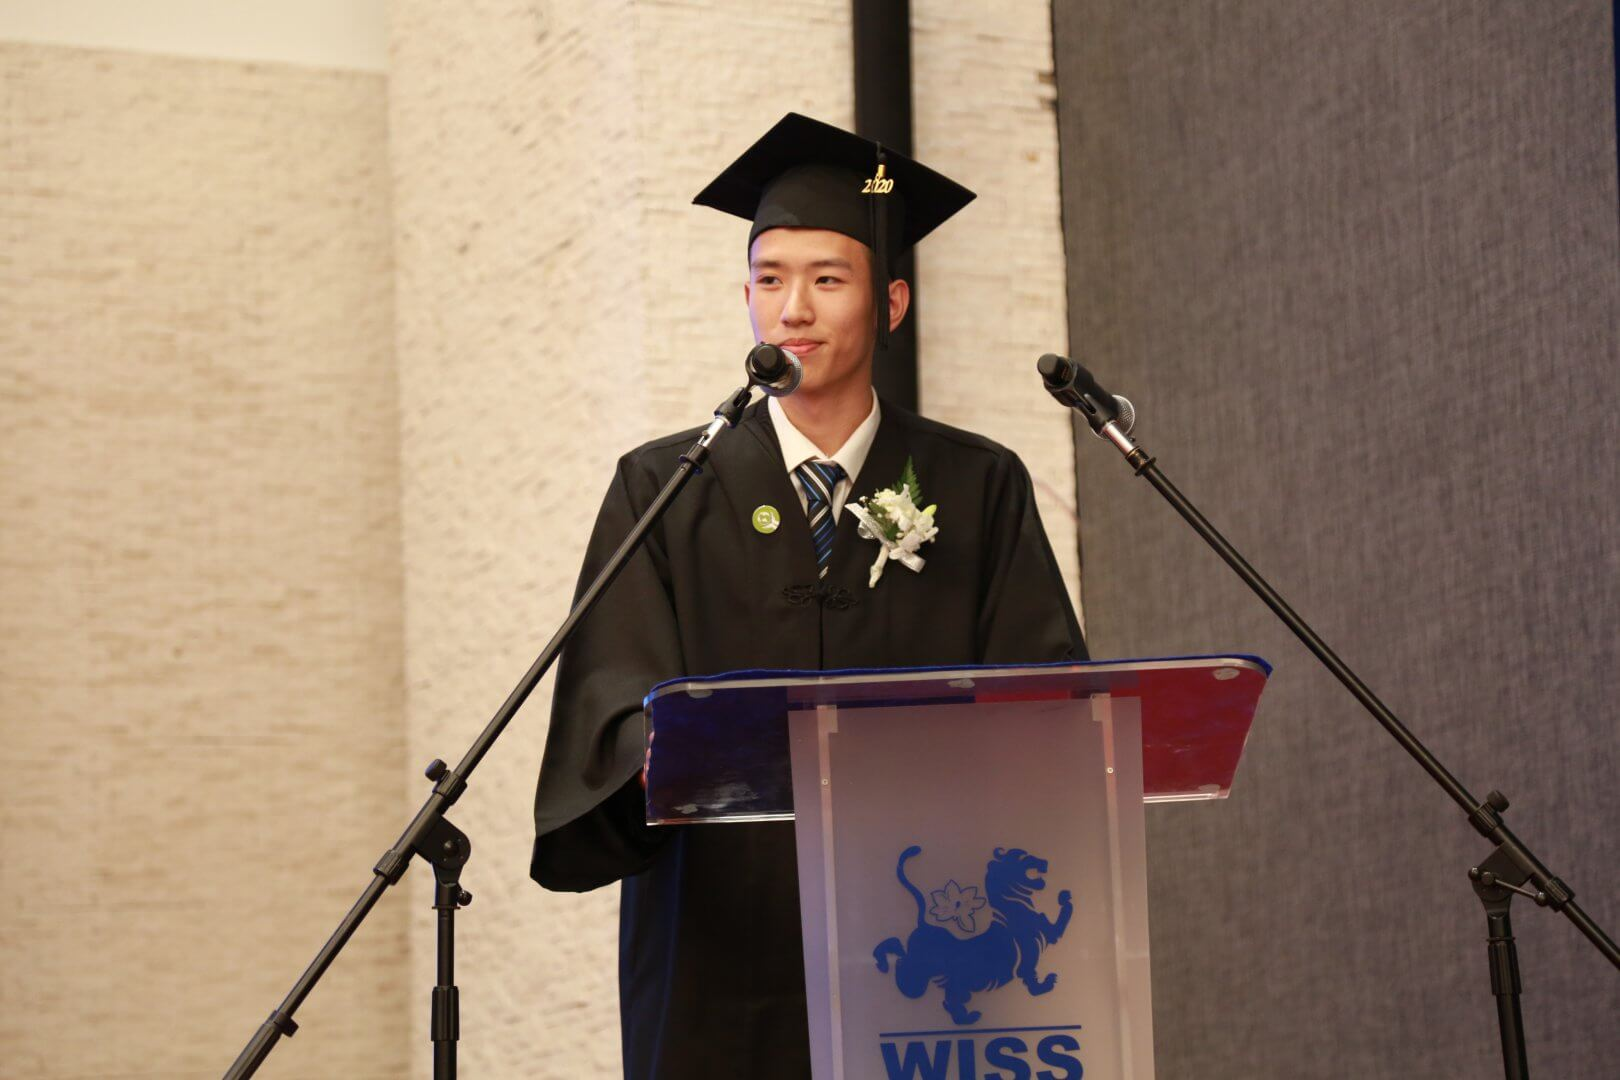 WISS_Alumni Feature_Graduation